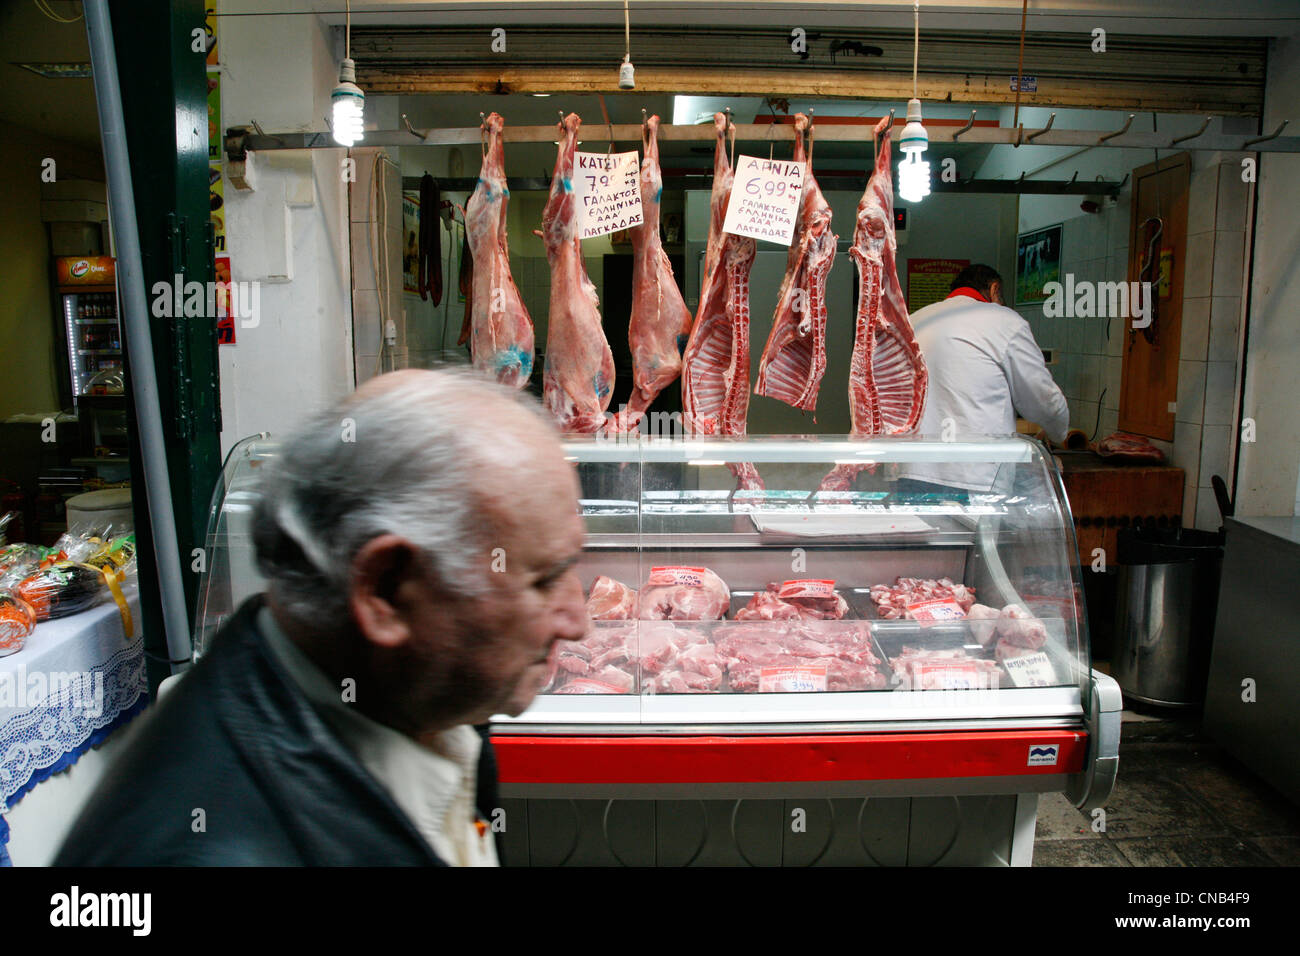 Meat Prices Stock Photos & Meat Prices Stock Images - Alamy